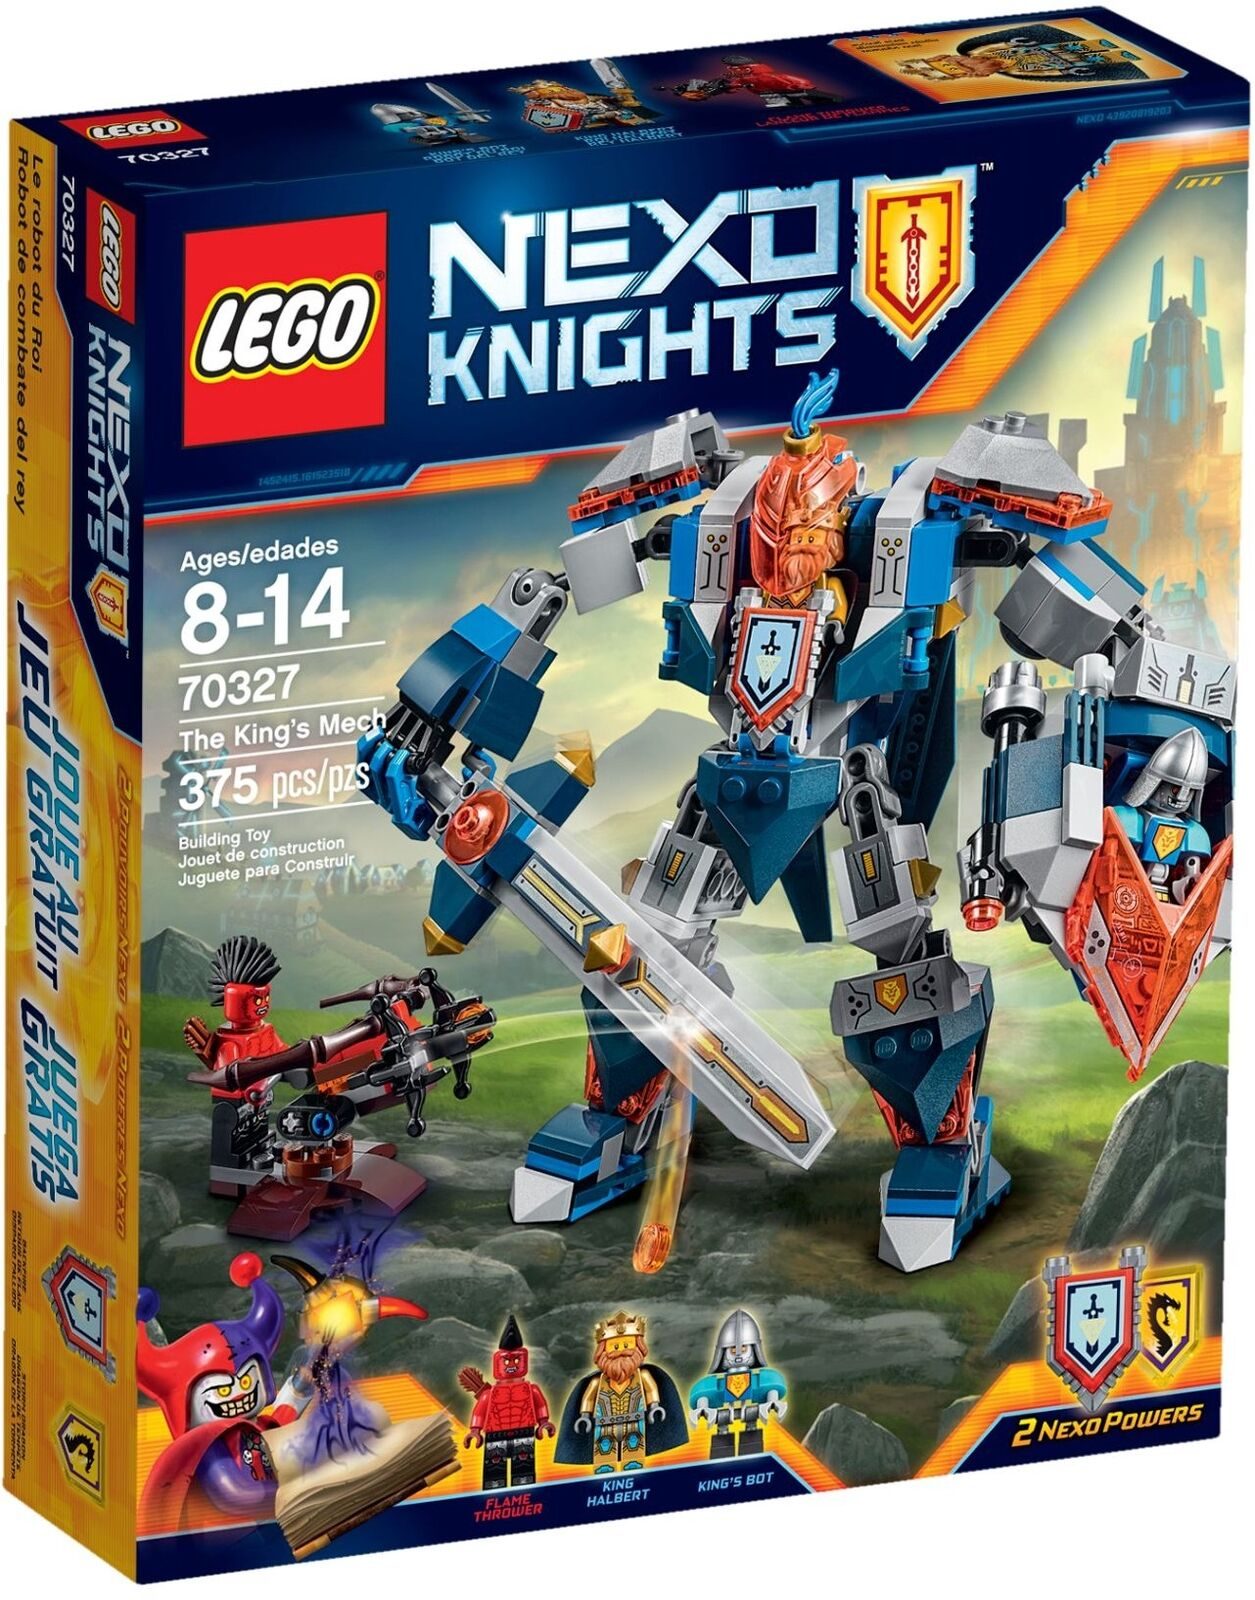 LEGO 70327 The King's Mech. Nexo Knights. NEW.